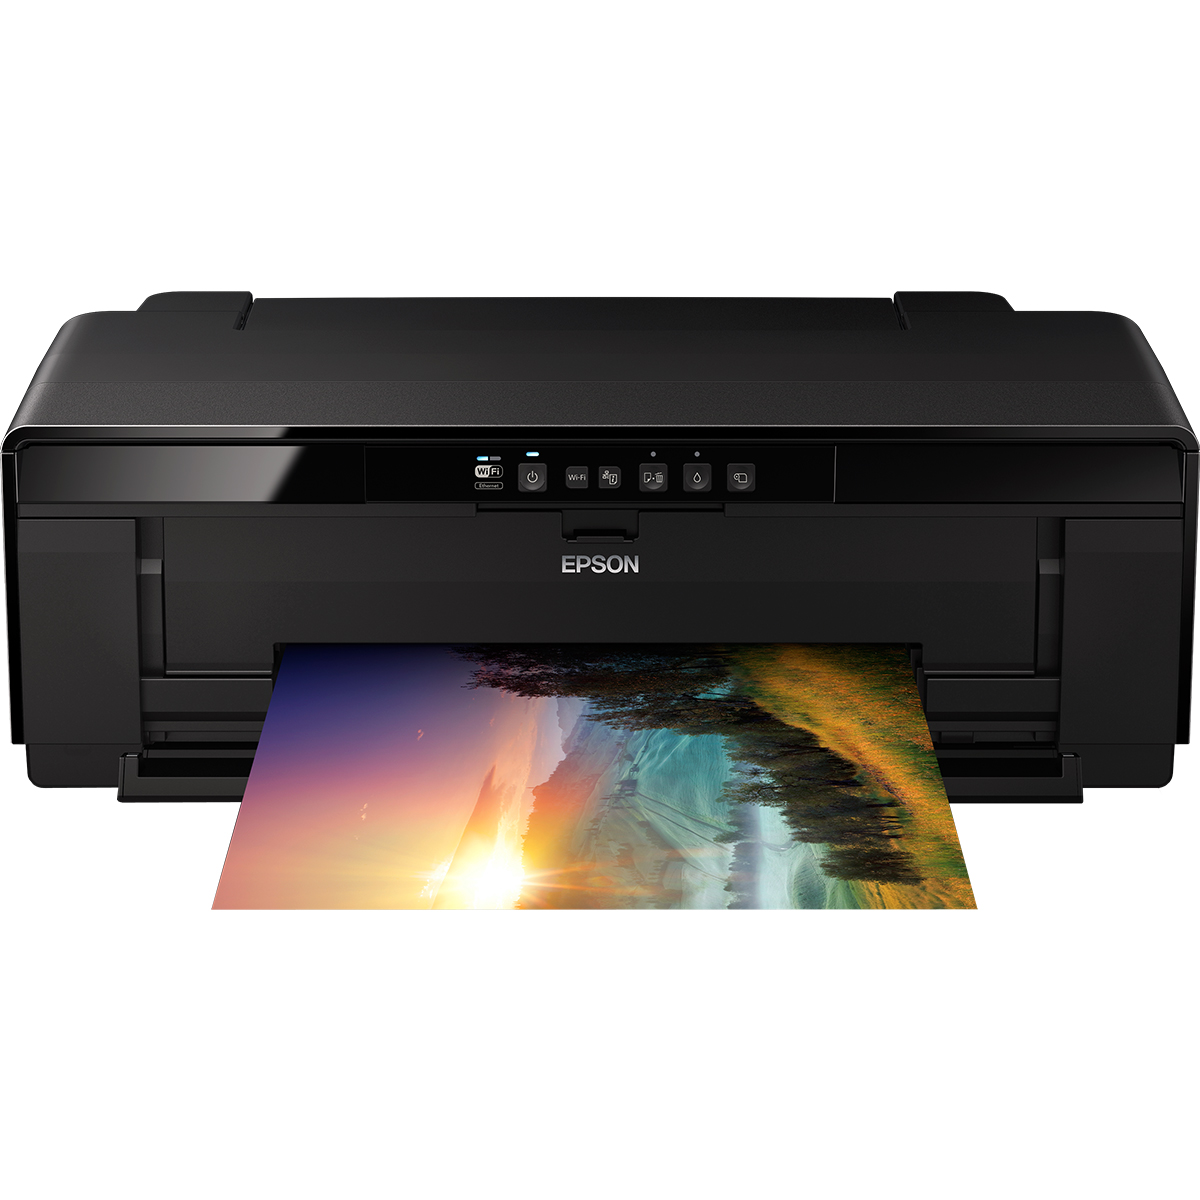 Epson SureColour SC-P400 A3 Pro Photo Colour Inkjet Printer